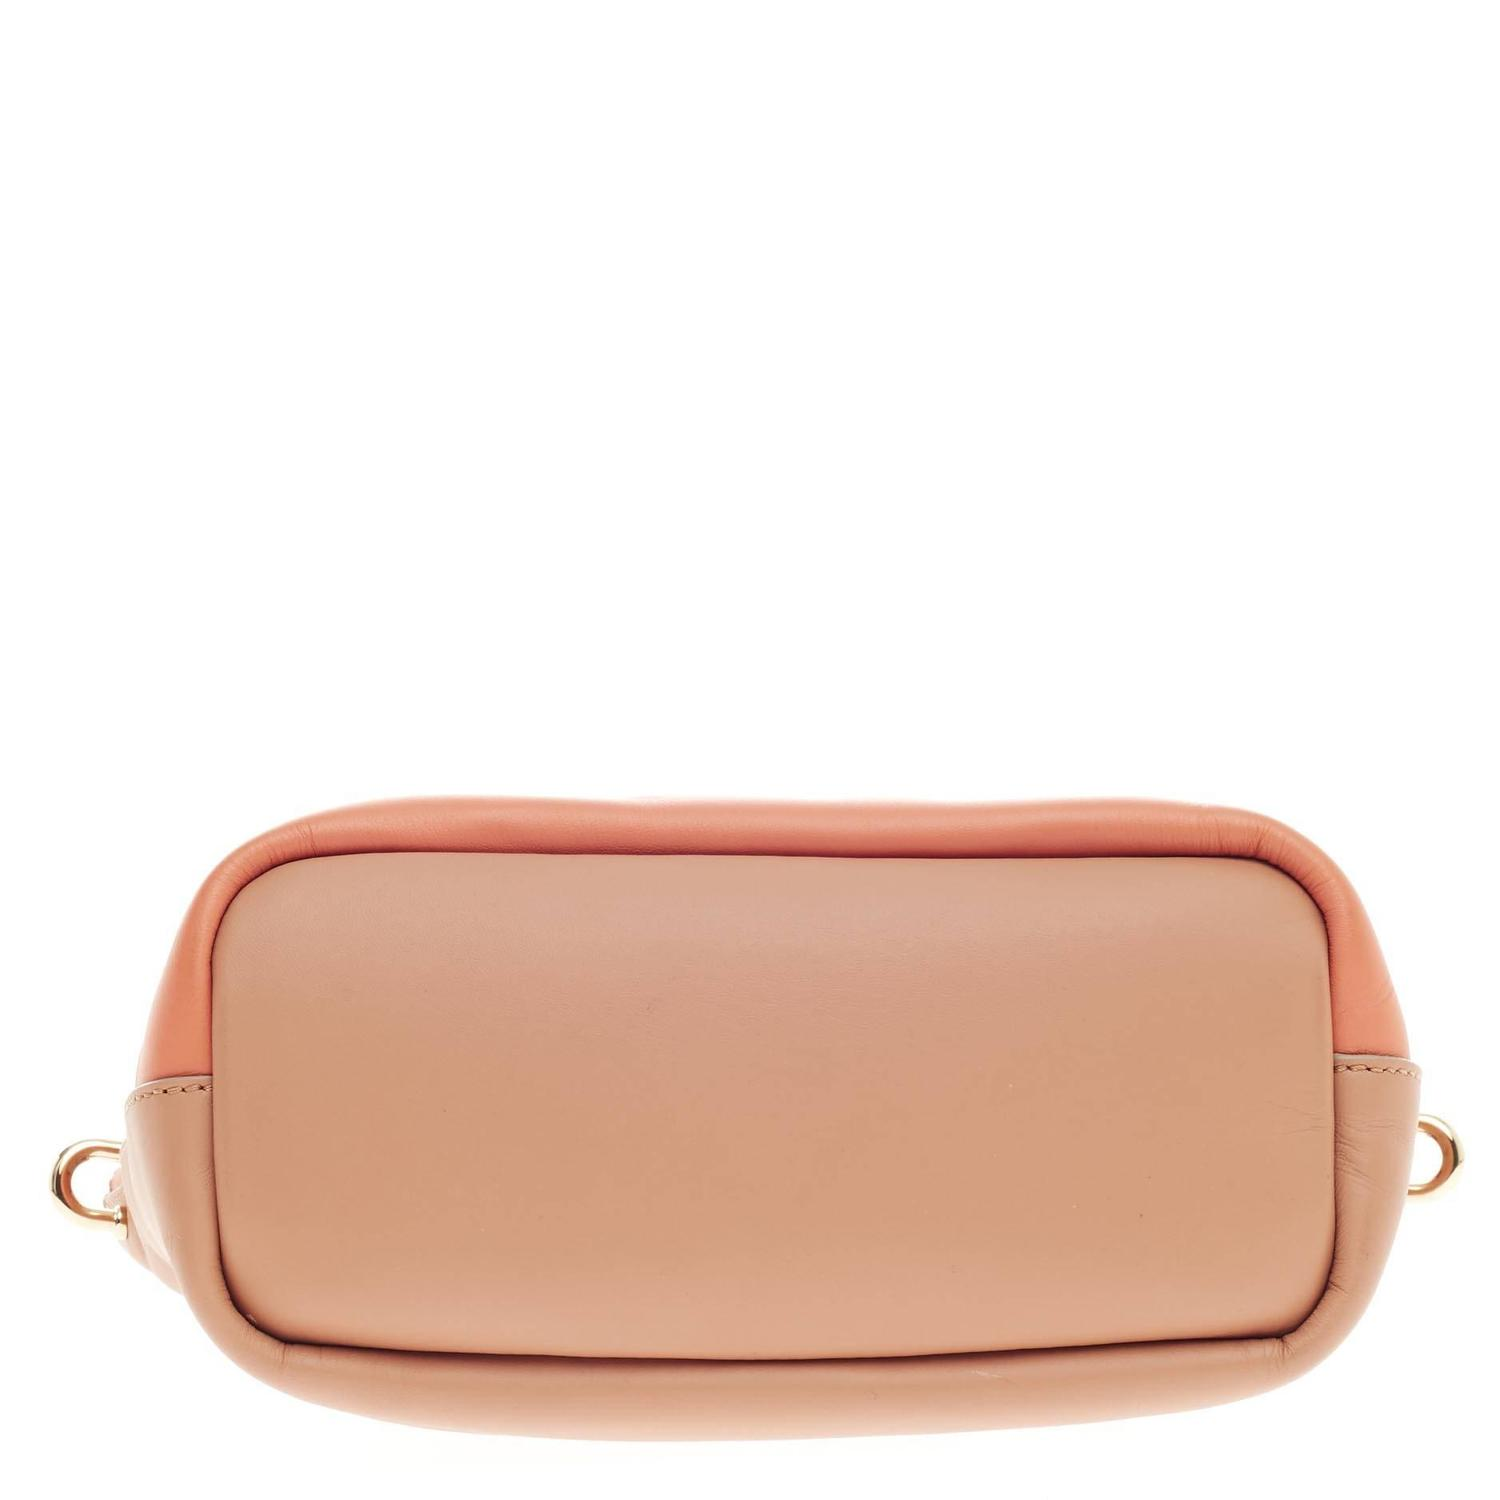 where to buy chloe bags - Chloe Baylee Satchel Bicolor Leather Mini For Sale at 1stdibs